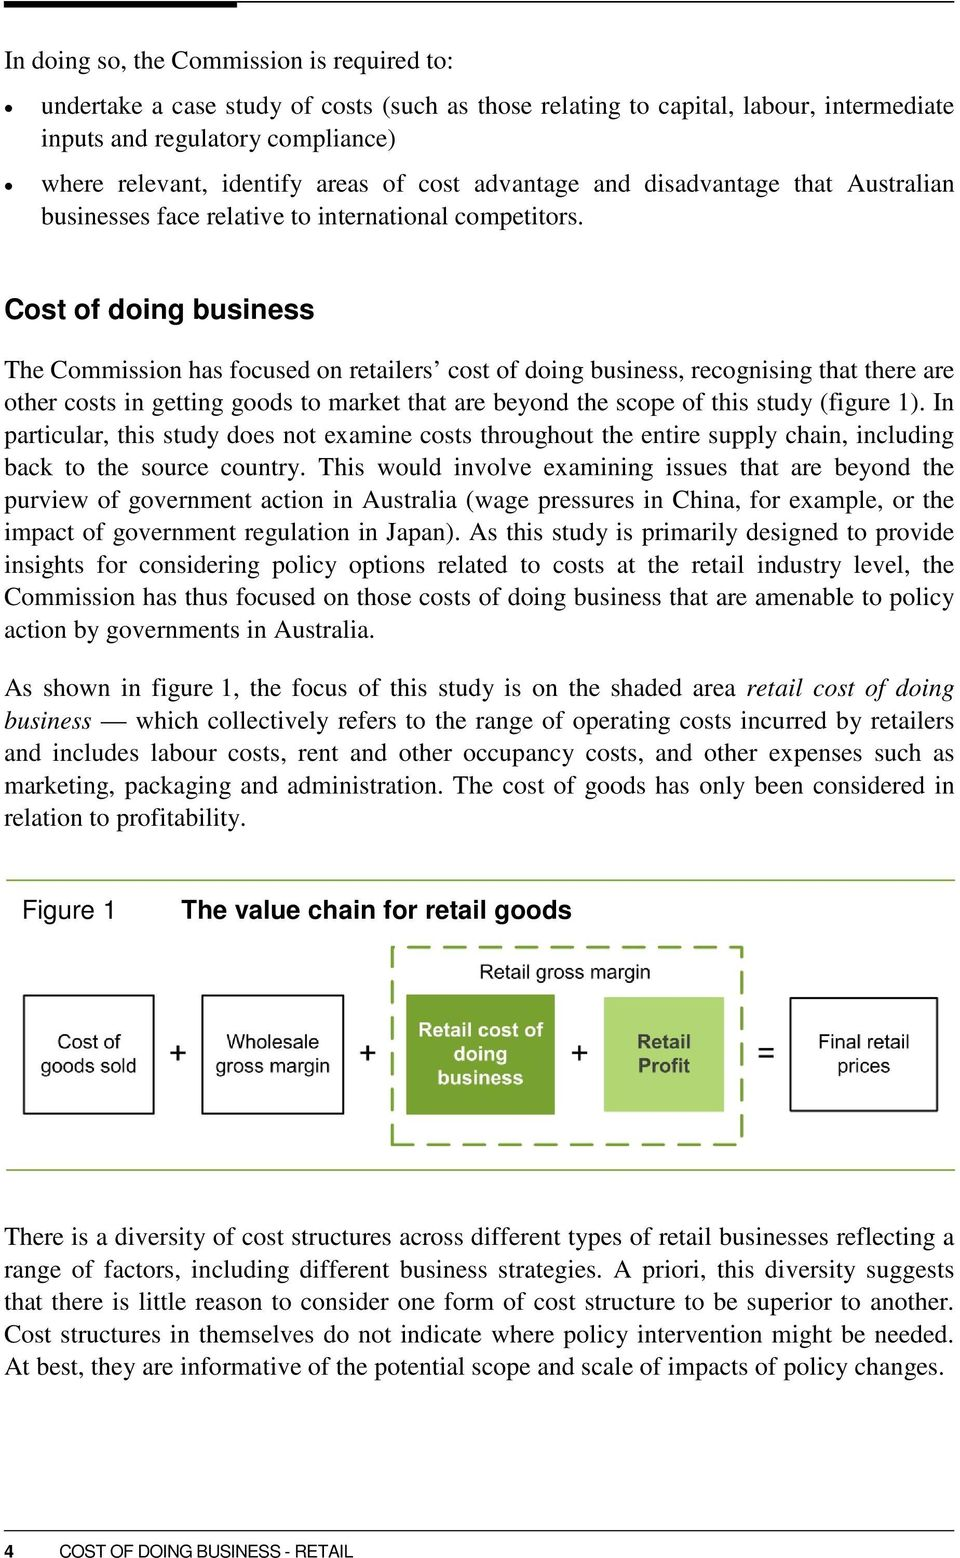 Cost of doing business The Commission has focused on retailers cost of doing business, recognising that there are other costs in getting goods to market that are beyond the scope of this study